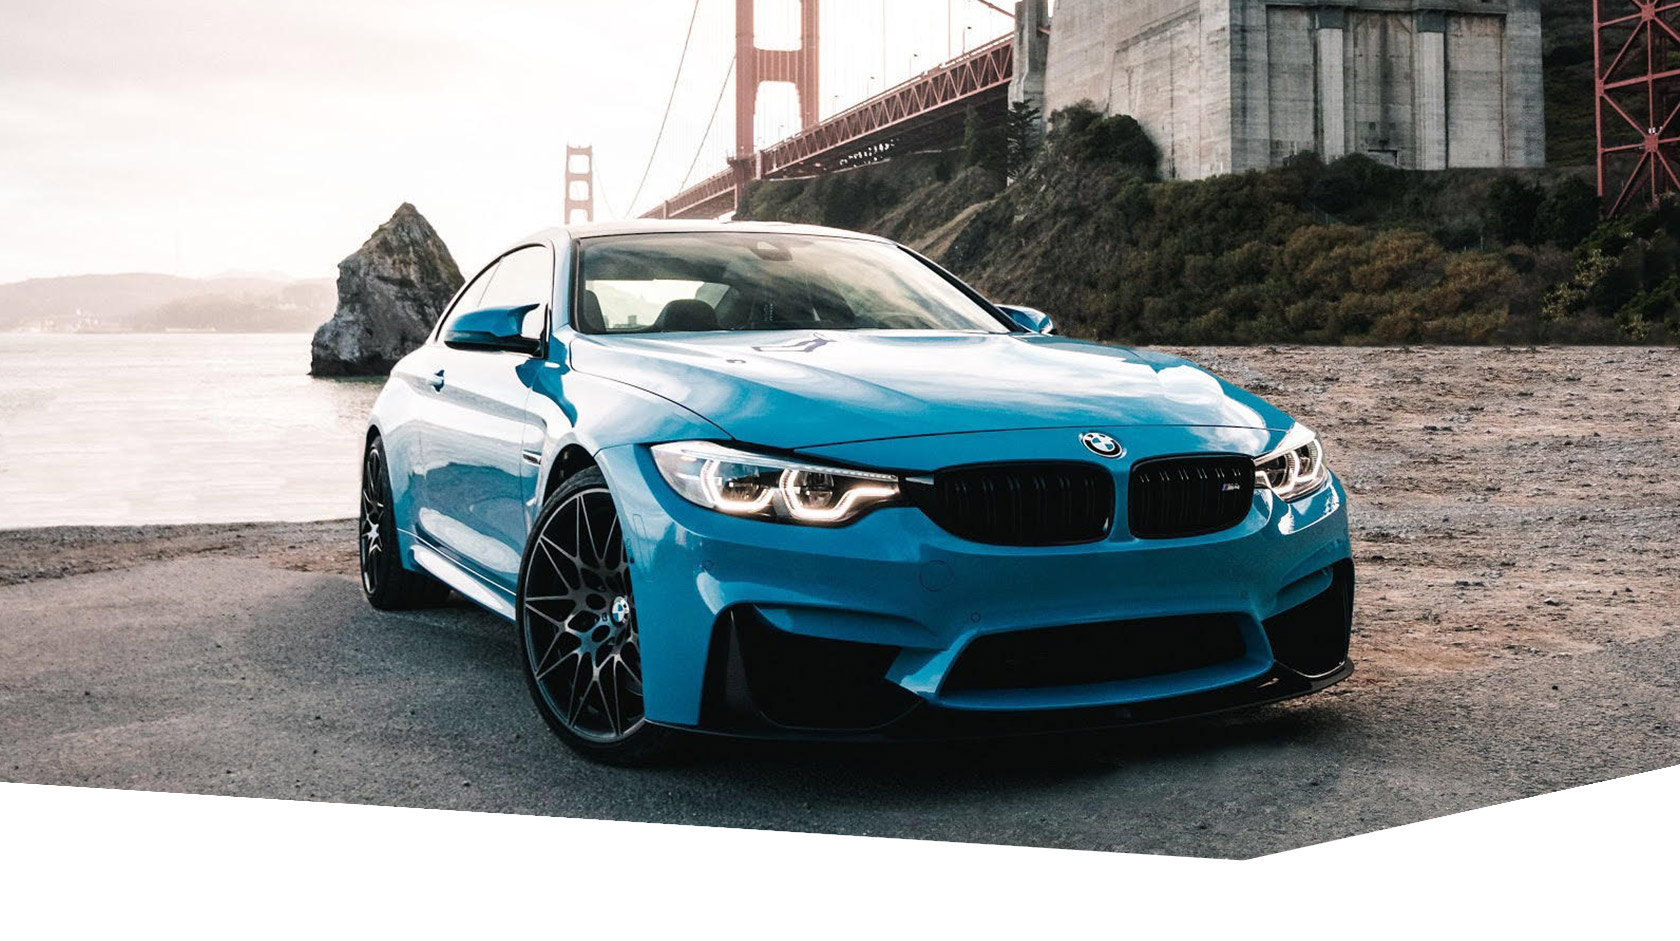 Bmw M4 Coupe >> Instagrammer Nick And His Bmw M4 Coupe